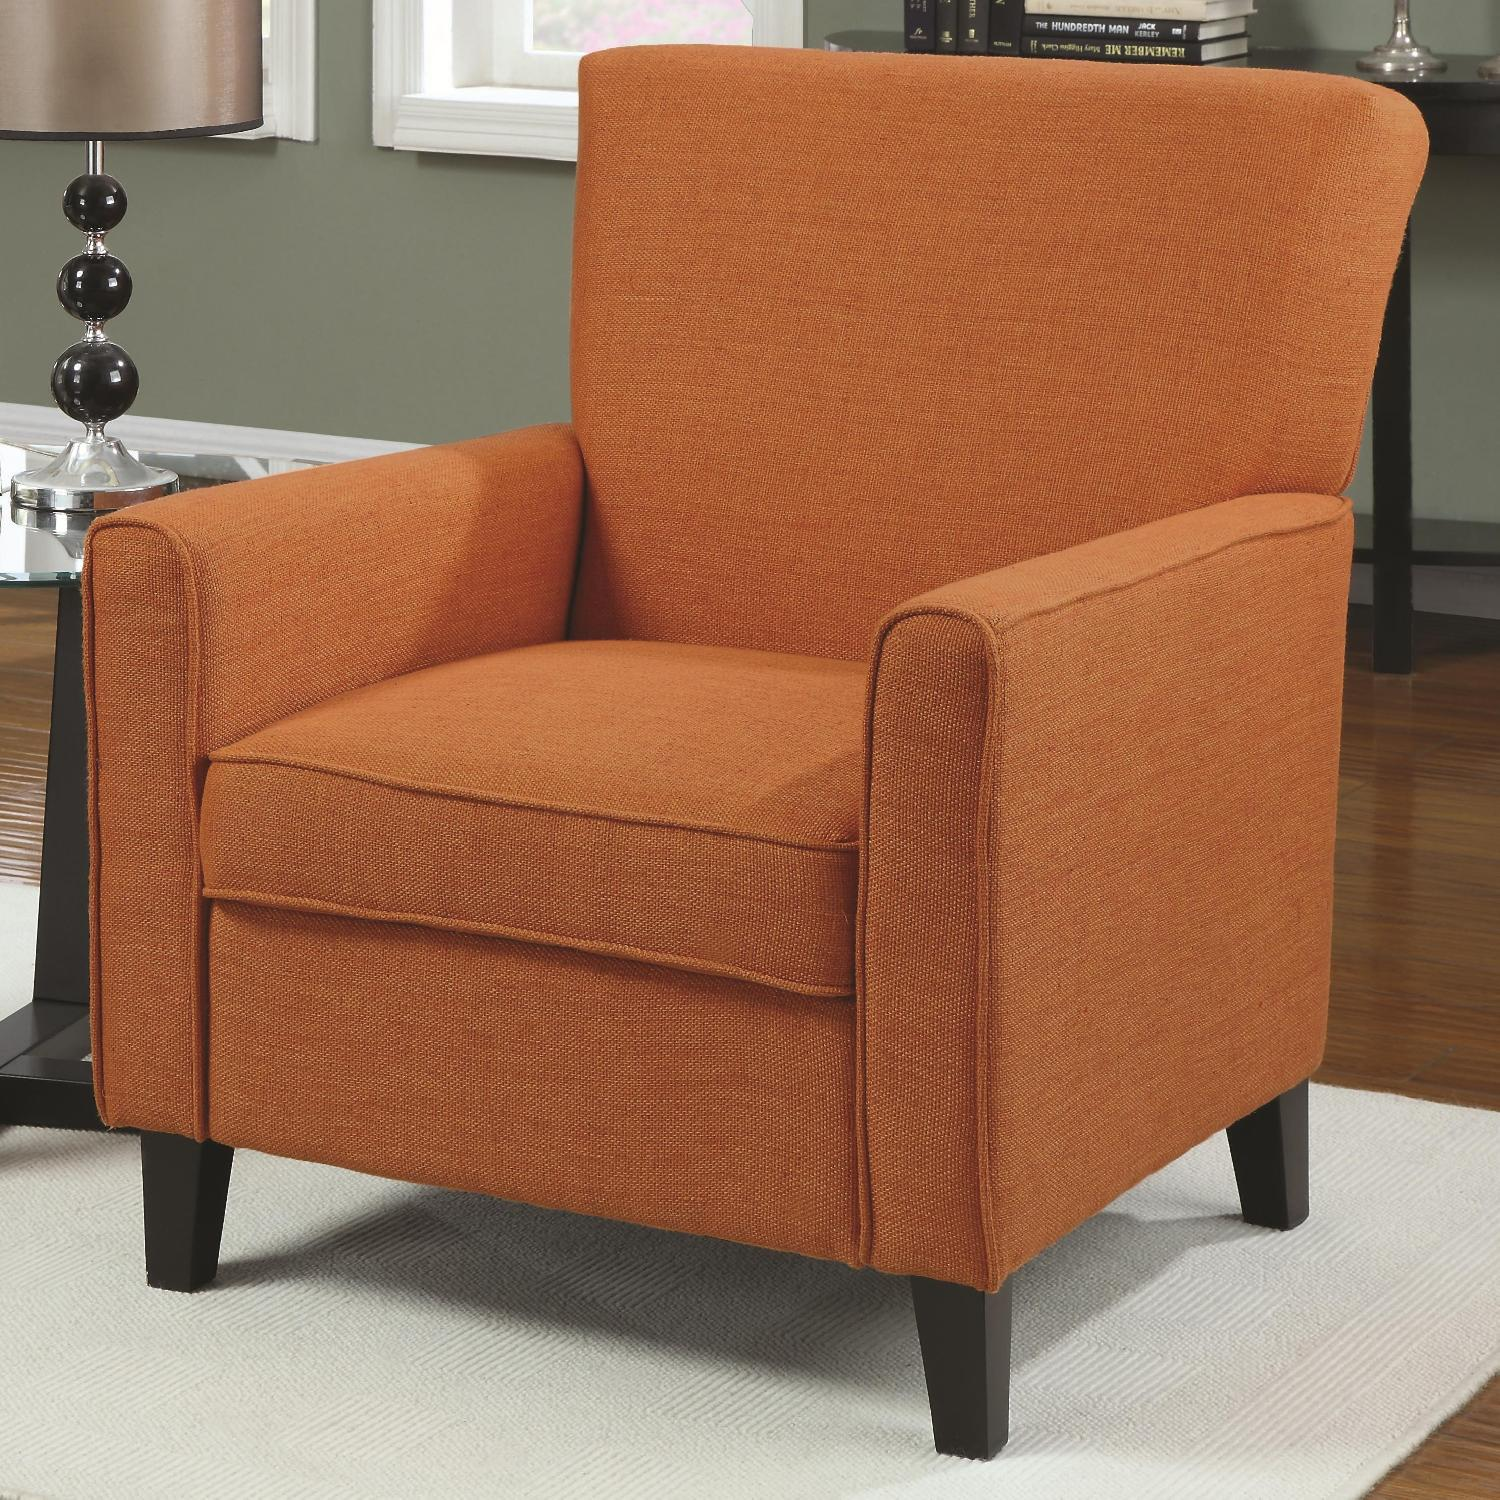 Accent Seating Orange Accent Chair With Contemporary: Accent Chair In Orange Woven Fabric W/ Tapered Arms